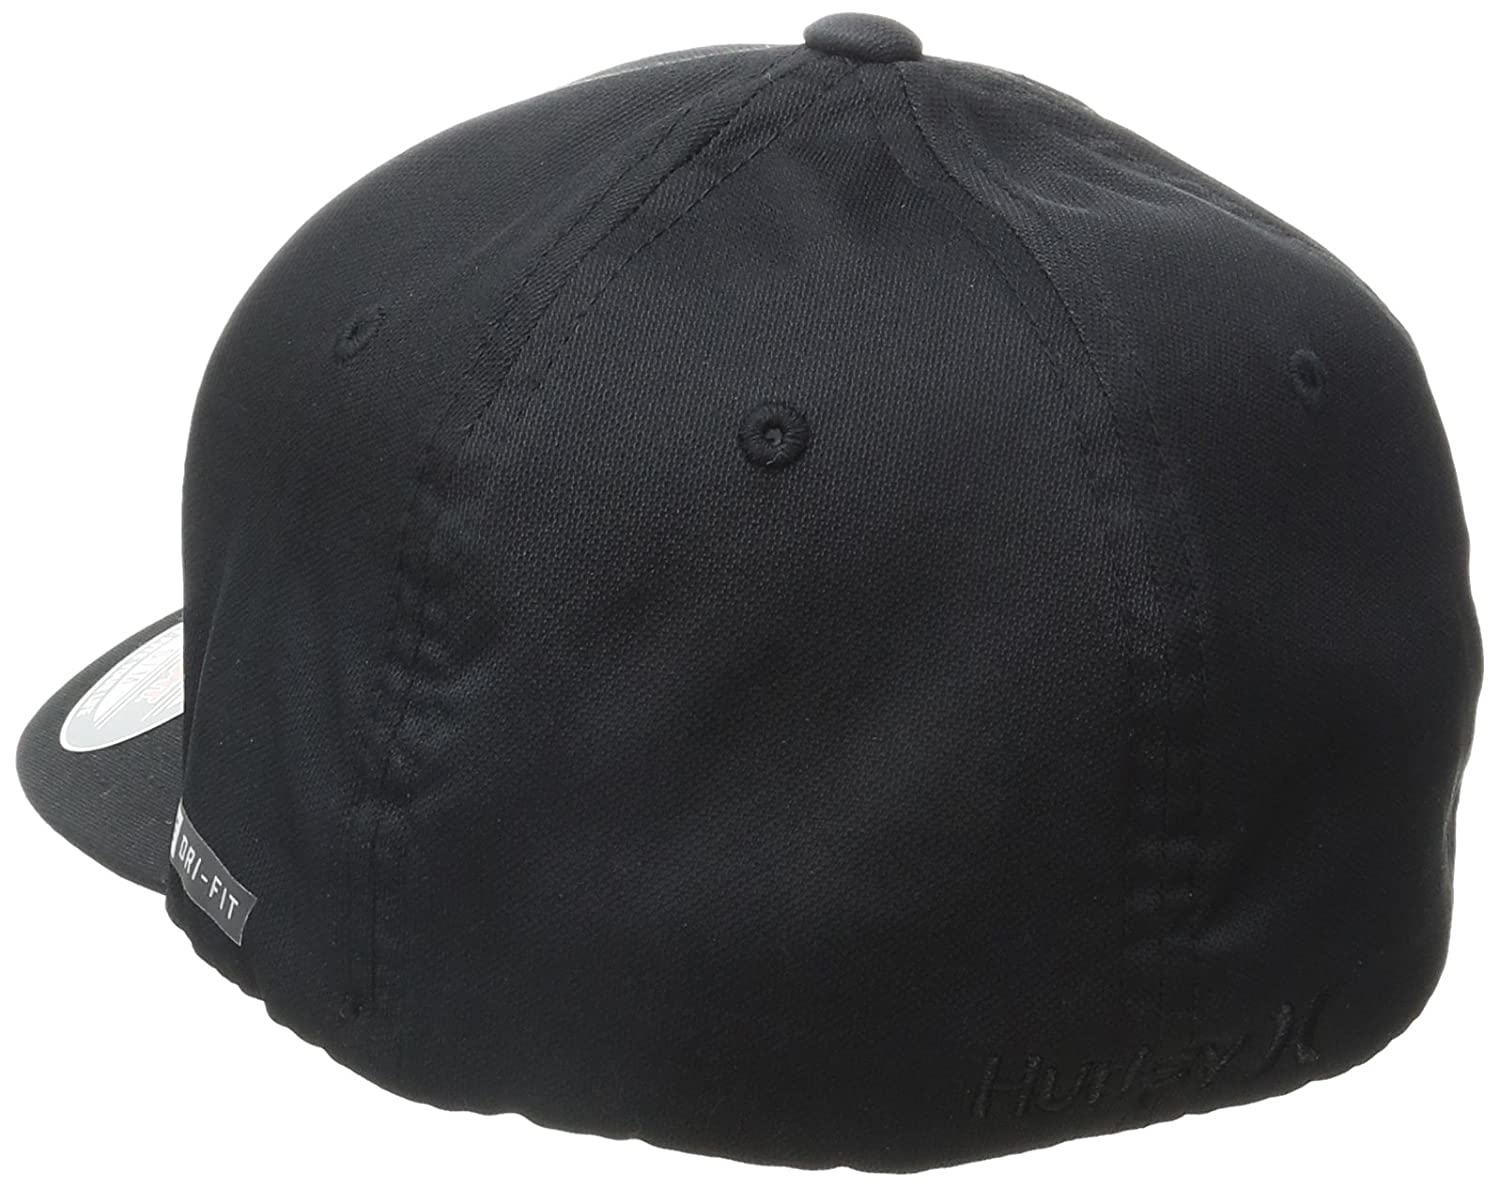 ae7812e8a66 Amazon.com  Hurley Mens Dri Fit One and Only Cap S M Black  Clothing